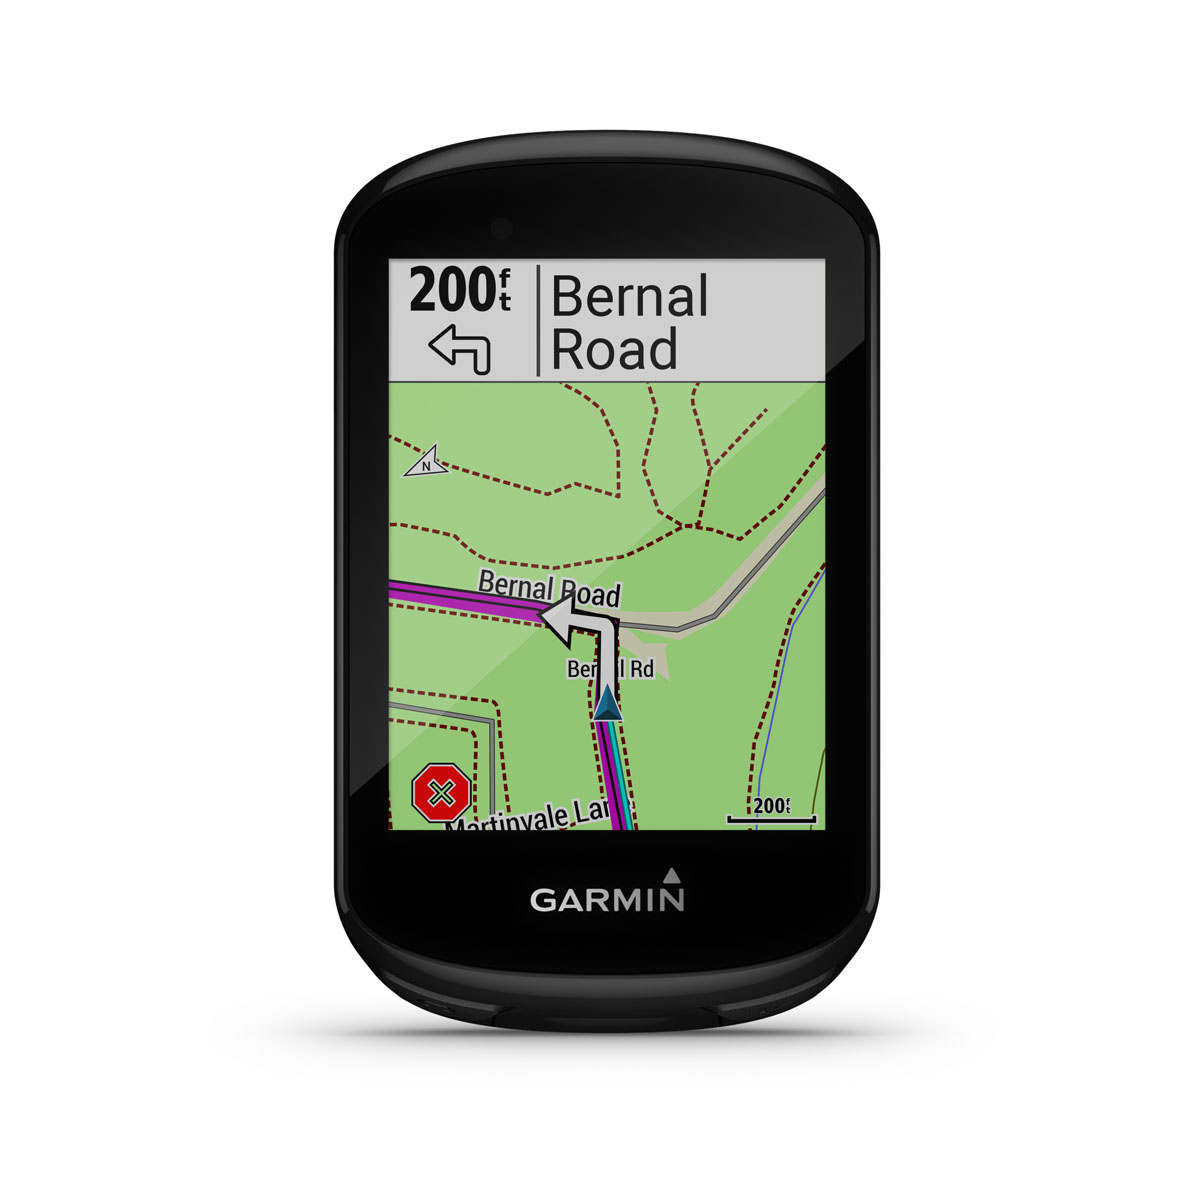 Garmin Edge 530 & 830 offer advanced metrics & mapping - even offroad